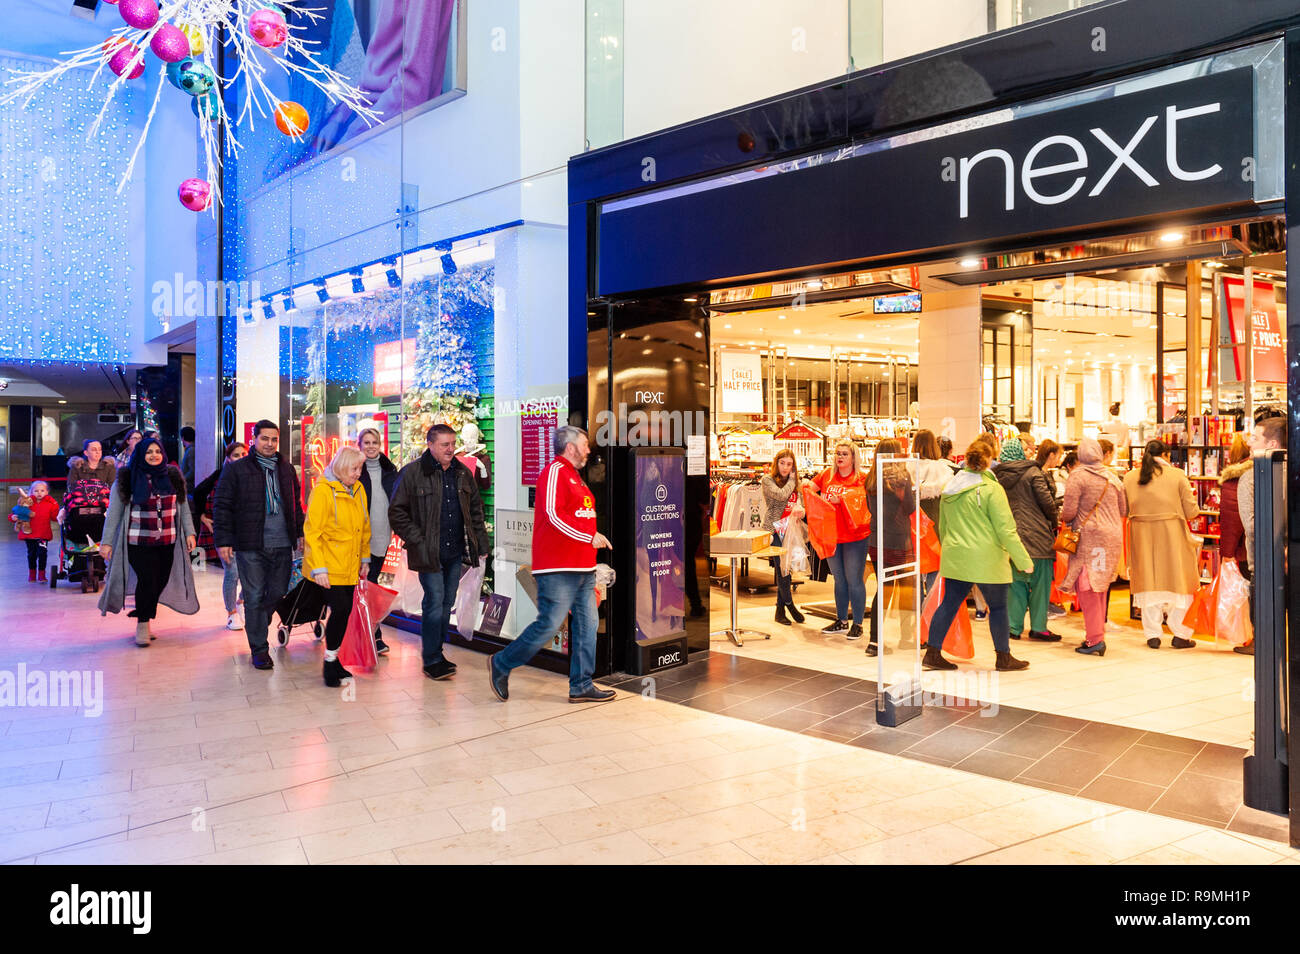 Blackpool, Lancashire,  UK. 26th Dec, 2018. Shoppers rush into the Next store for the 6am sale with large plastic bags given to them by staff so store supervisors can see their purchases. With some people claiming they queued from 2am, there was approximately 120 bargain hunters waiting for the shop to open at 6am. Shop staff say this was the biggest queue in a number of years.  Credit: Andy Gibson/Alamy Live News. Stock Photo